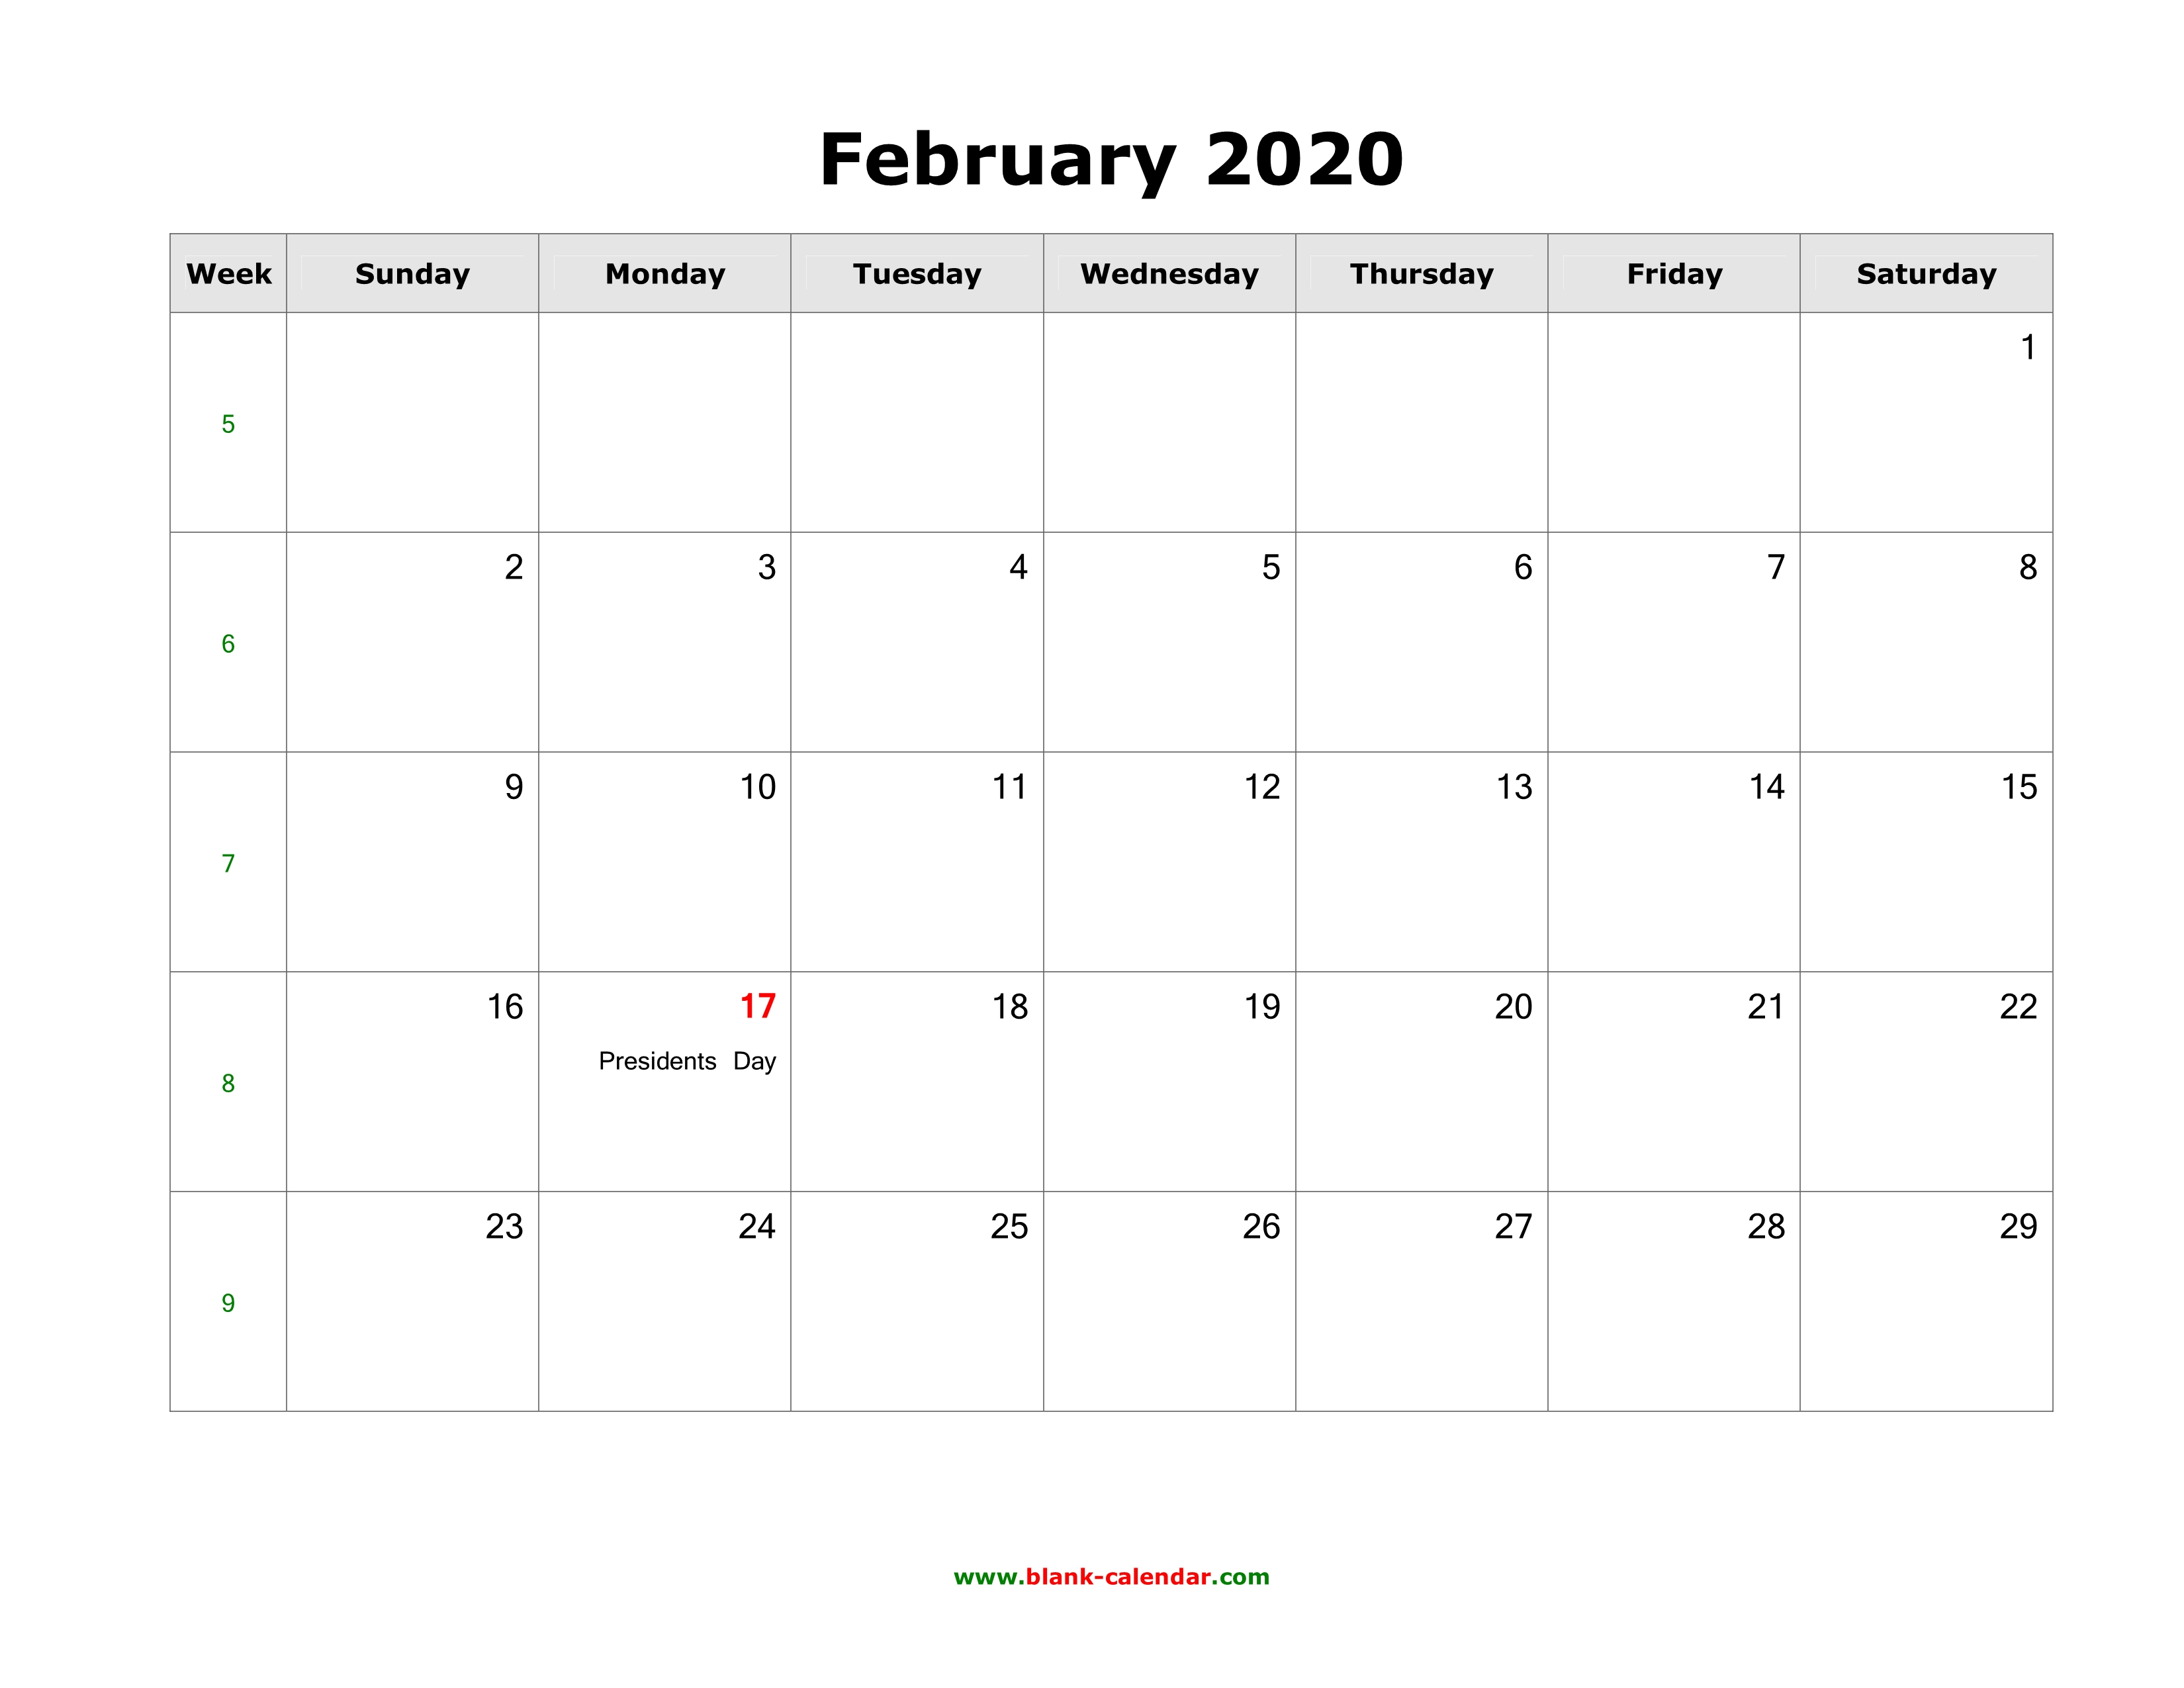 February 2020 Calendar Holiday In Usa Download February 2020 Blank Calendar with US Holidays (horizontal)